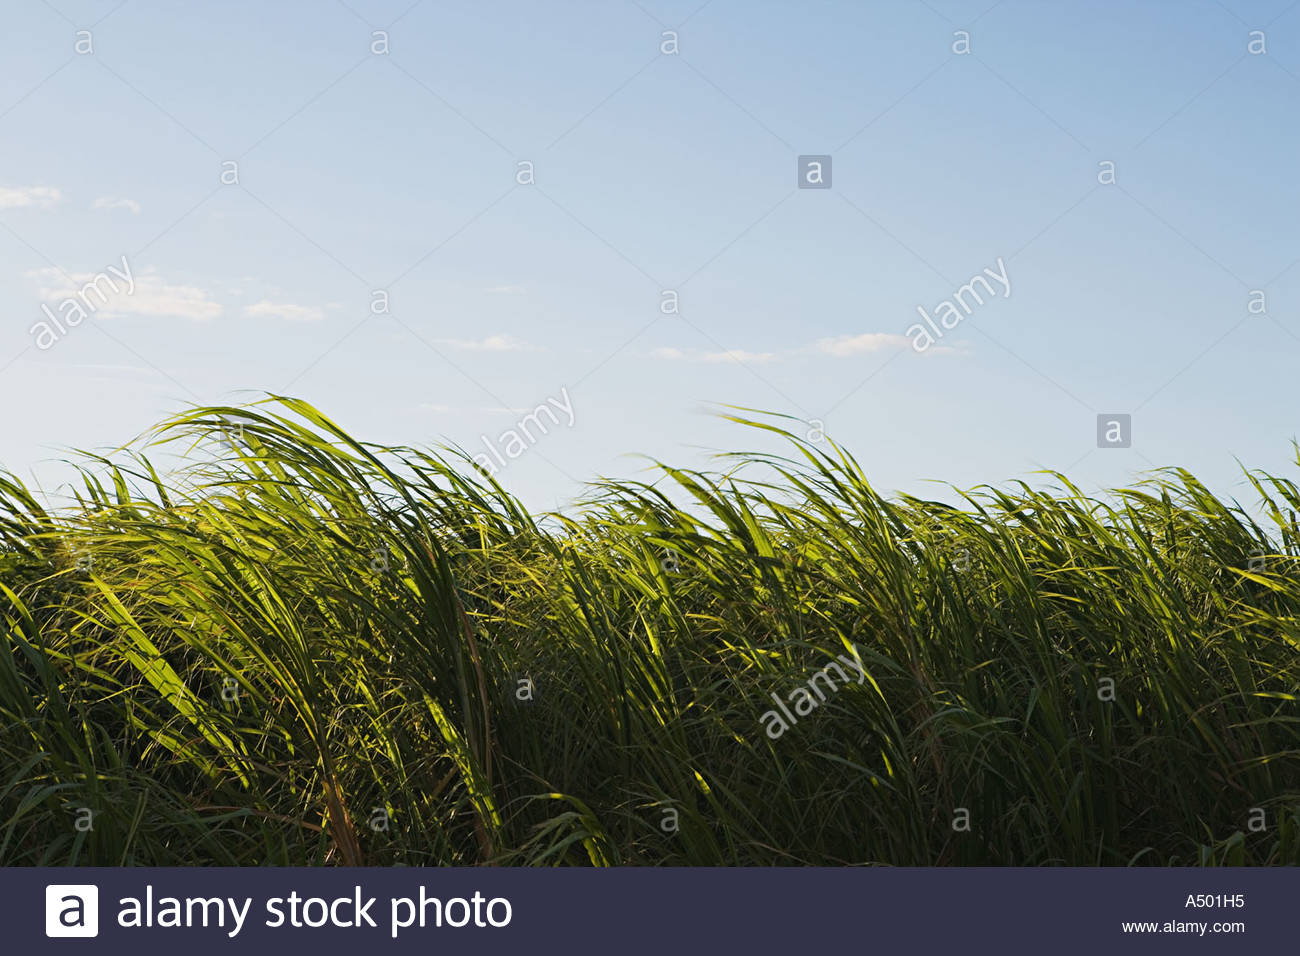 Grass in a breeze - Stock Image